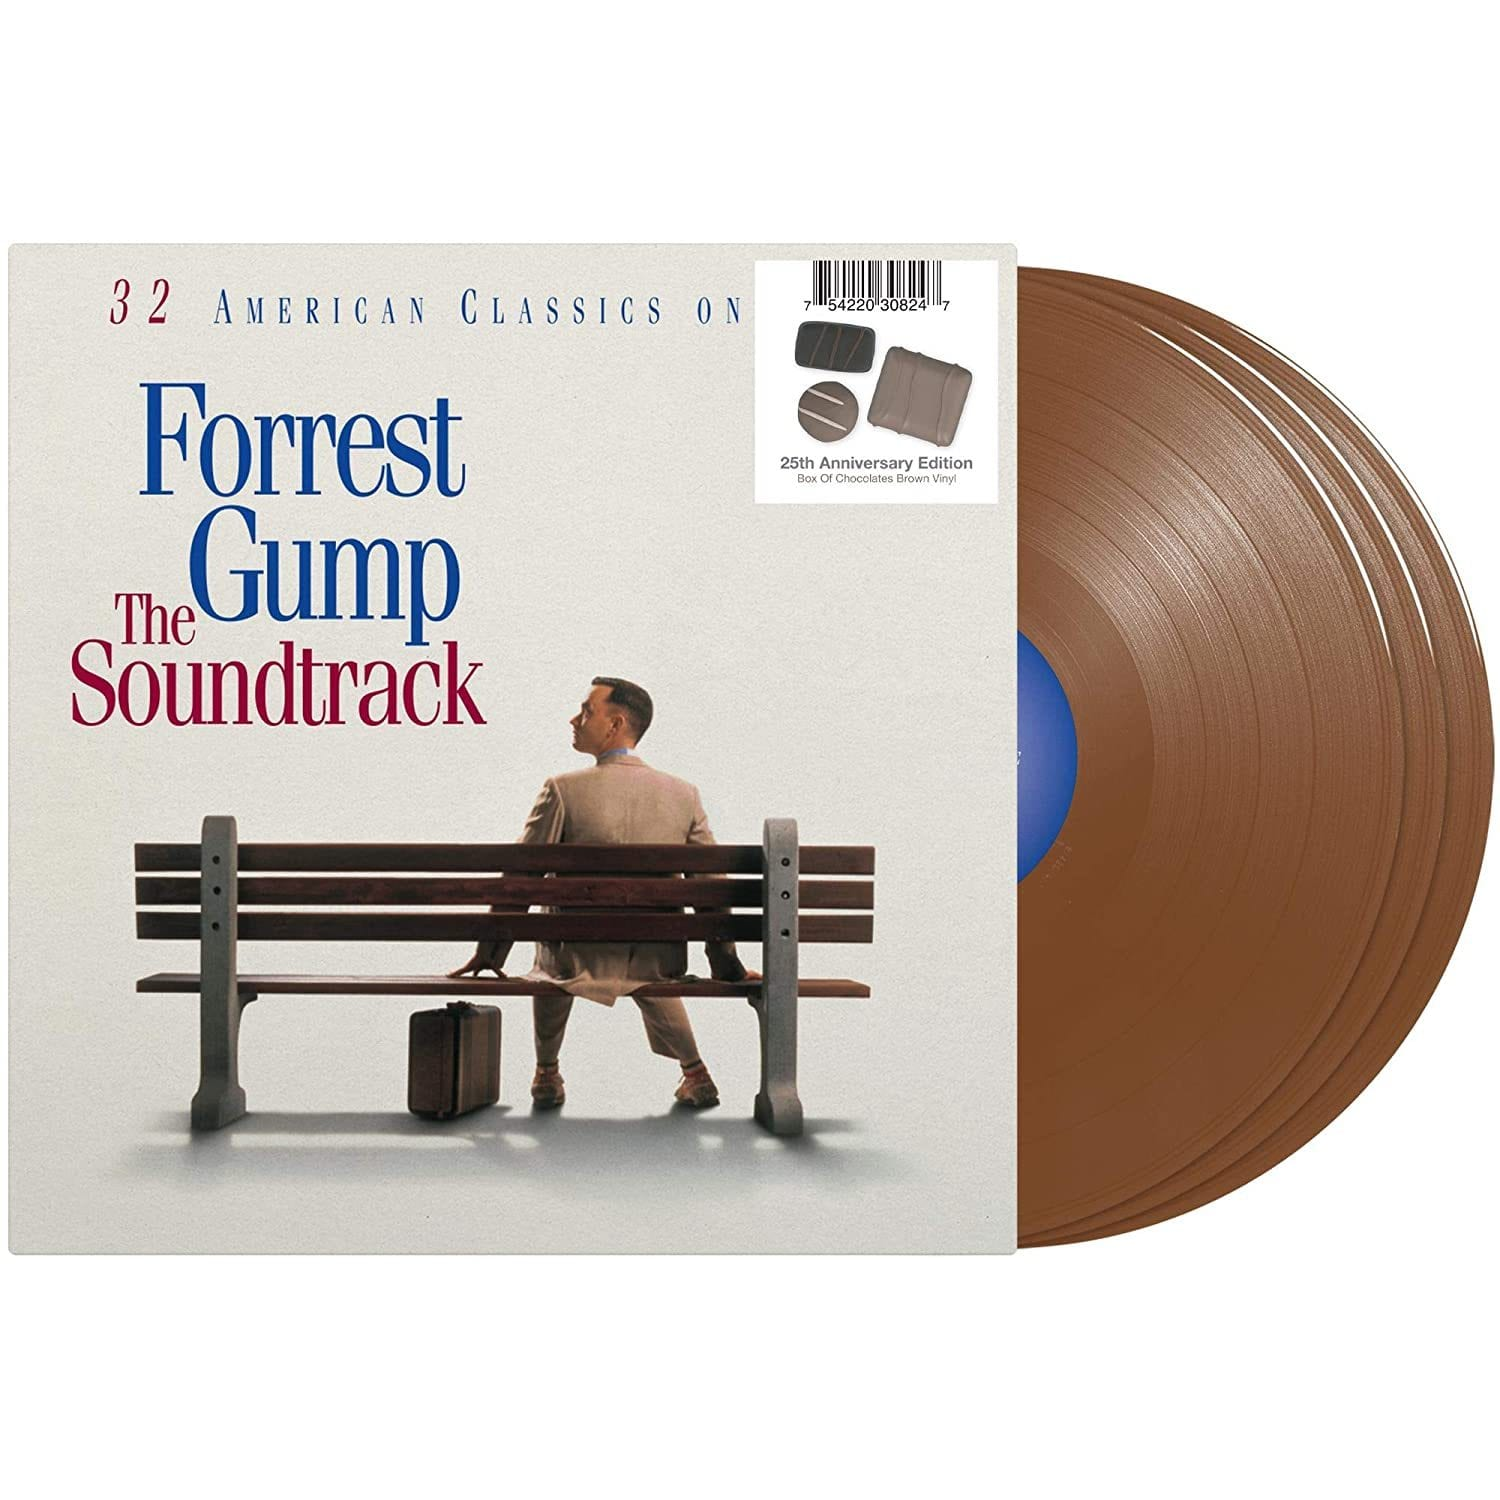 Various Artists - Forrest Gump (Soundtrack) [3LP] (Box Of Chocolates Brown Vinyl) - Urban Vinyl | Records, Headphones, and more.